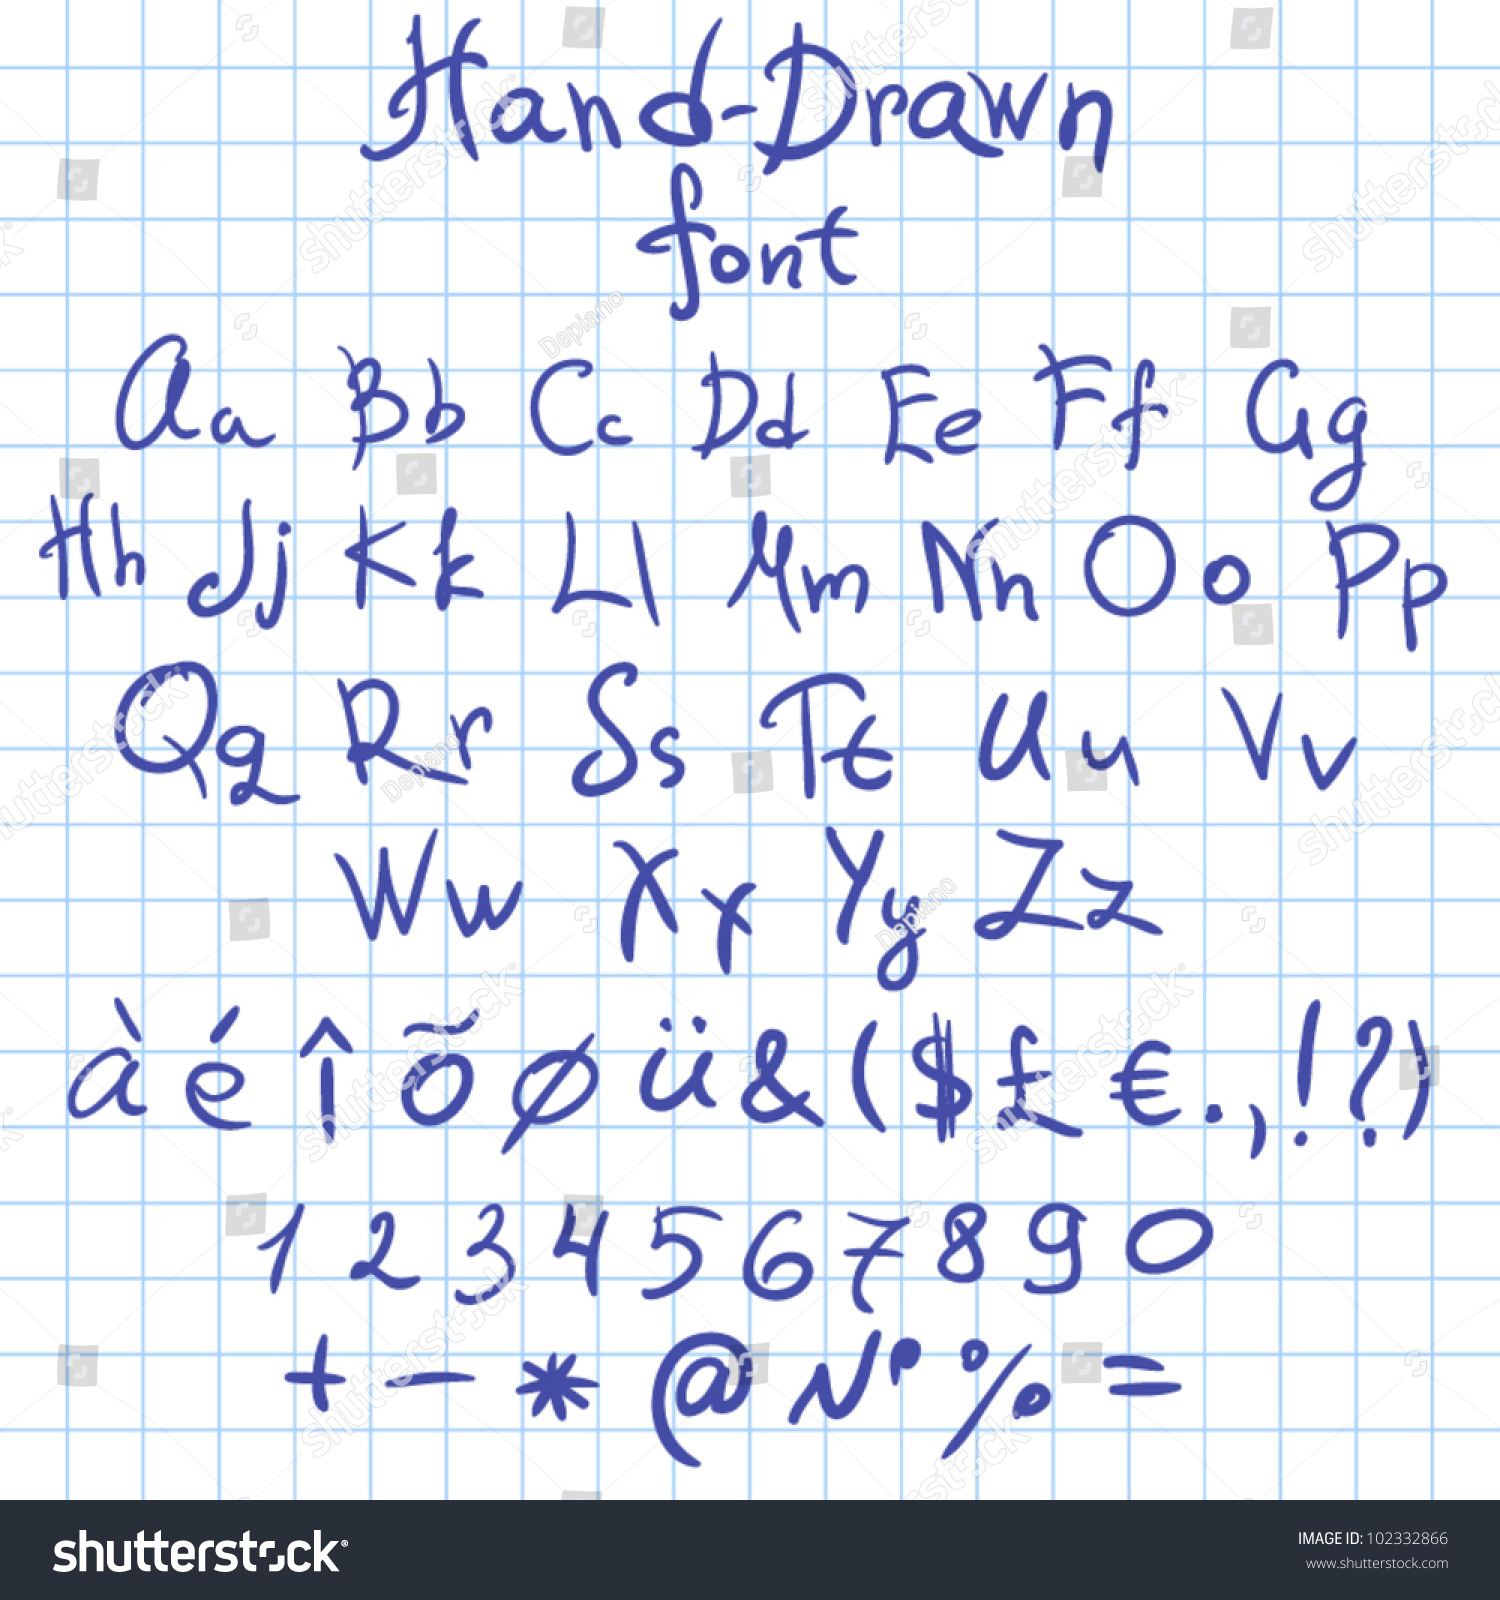 hand drawn font with all symbols doodle font vector letters set